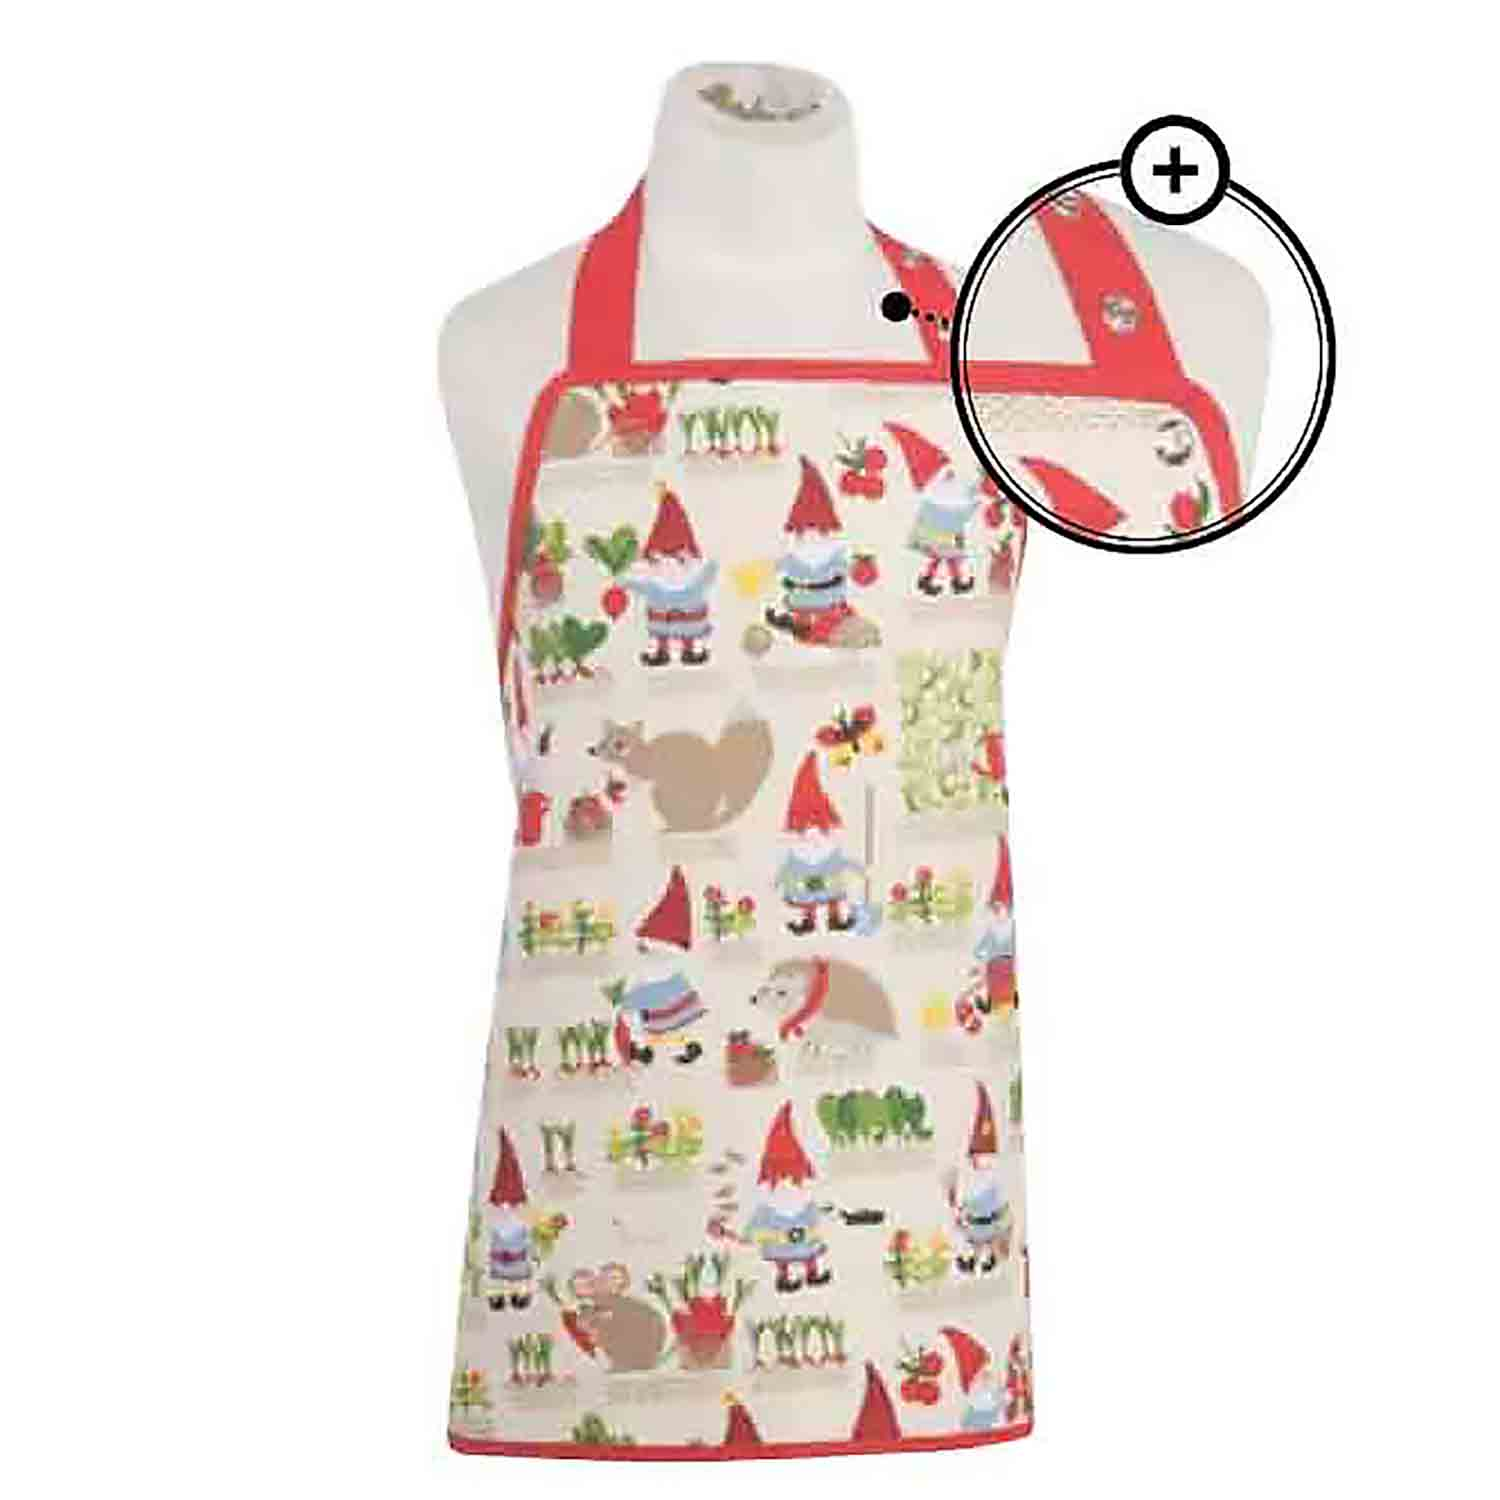 Aprons and Linens